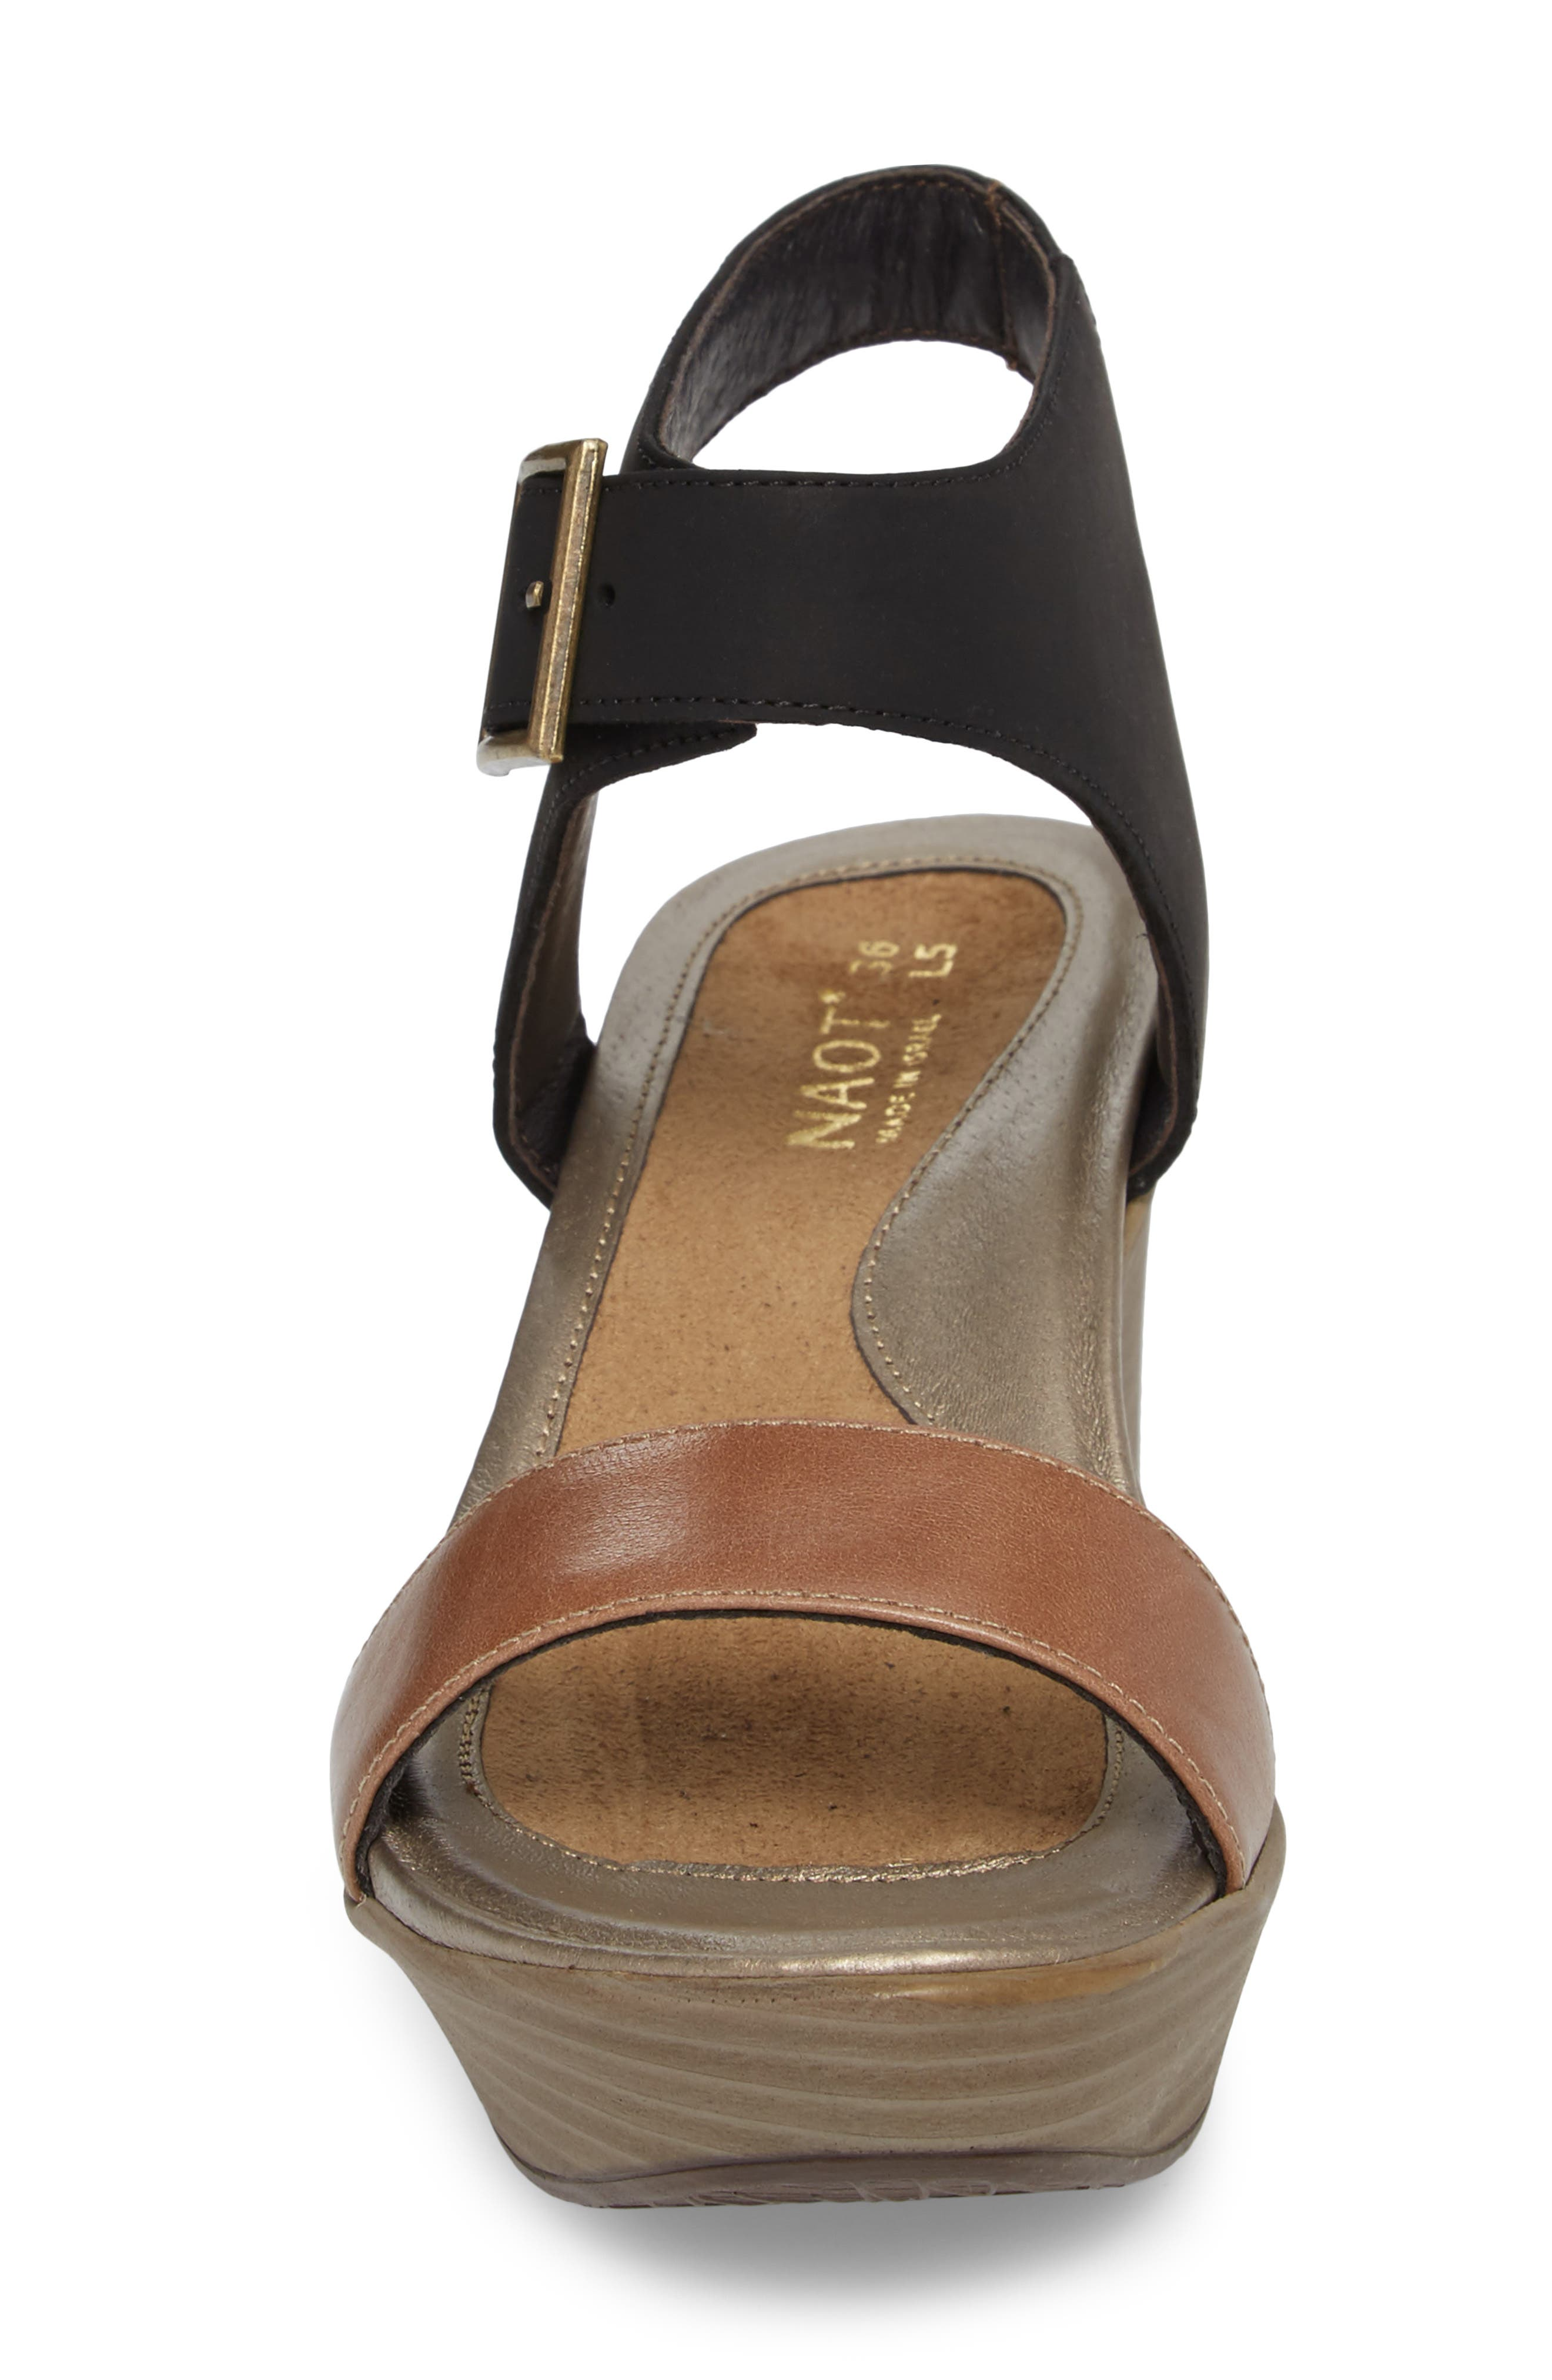 Caprice Wedge Sandal,                             Alternate thumbnail 4, color,                             TAN LEATHER